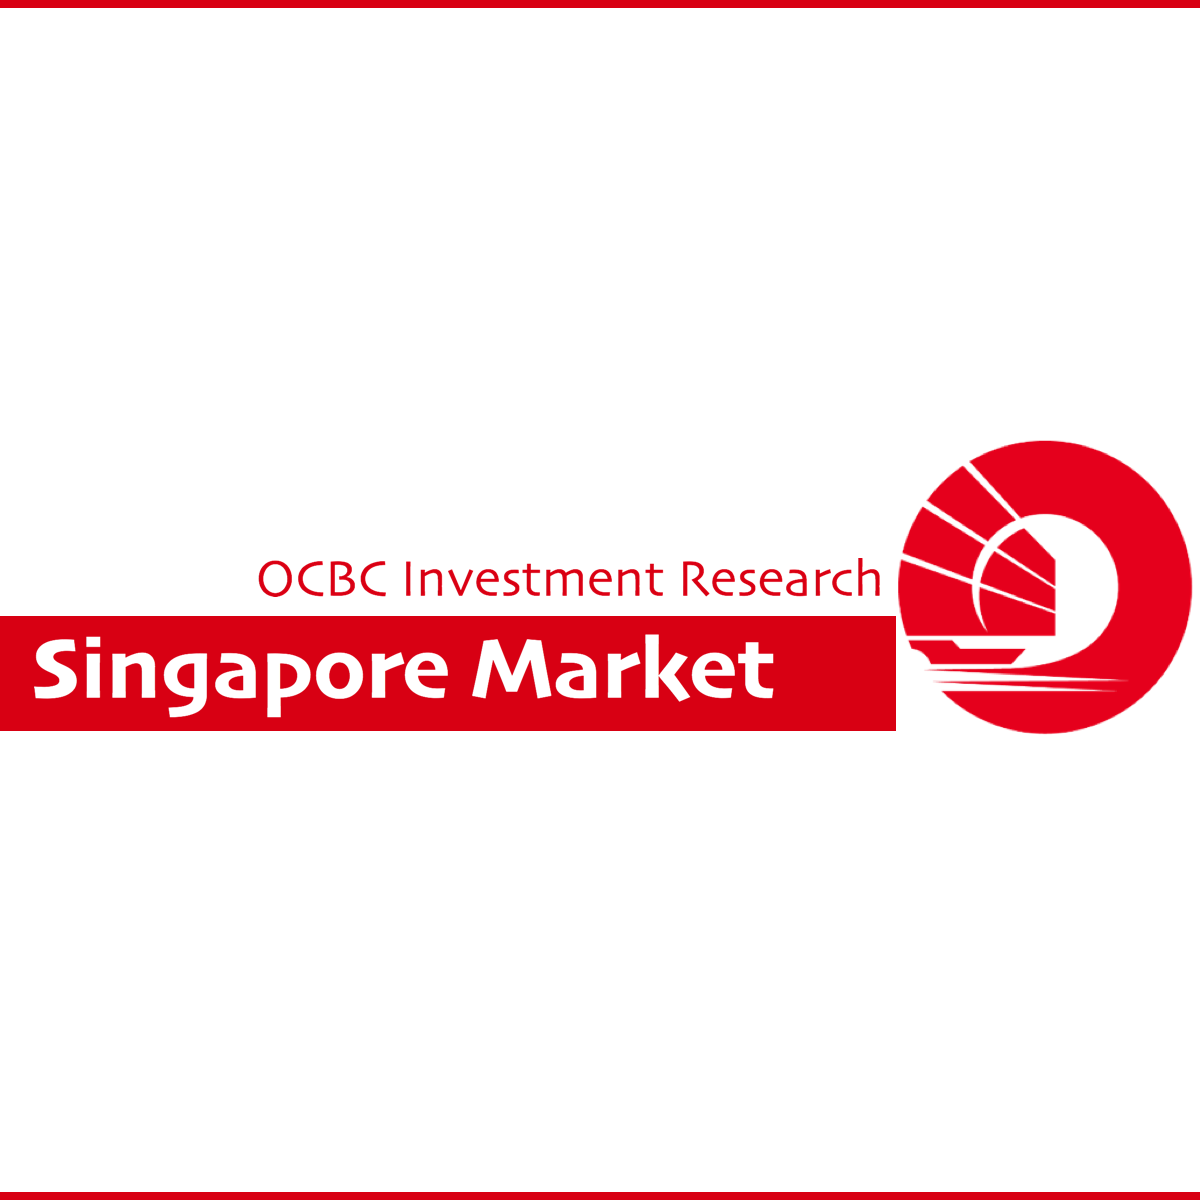 Singapore Market - OCBC Investment 2018-02-07: Great Singapore Sale!